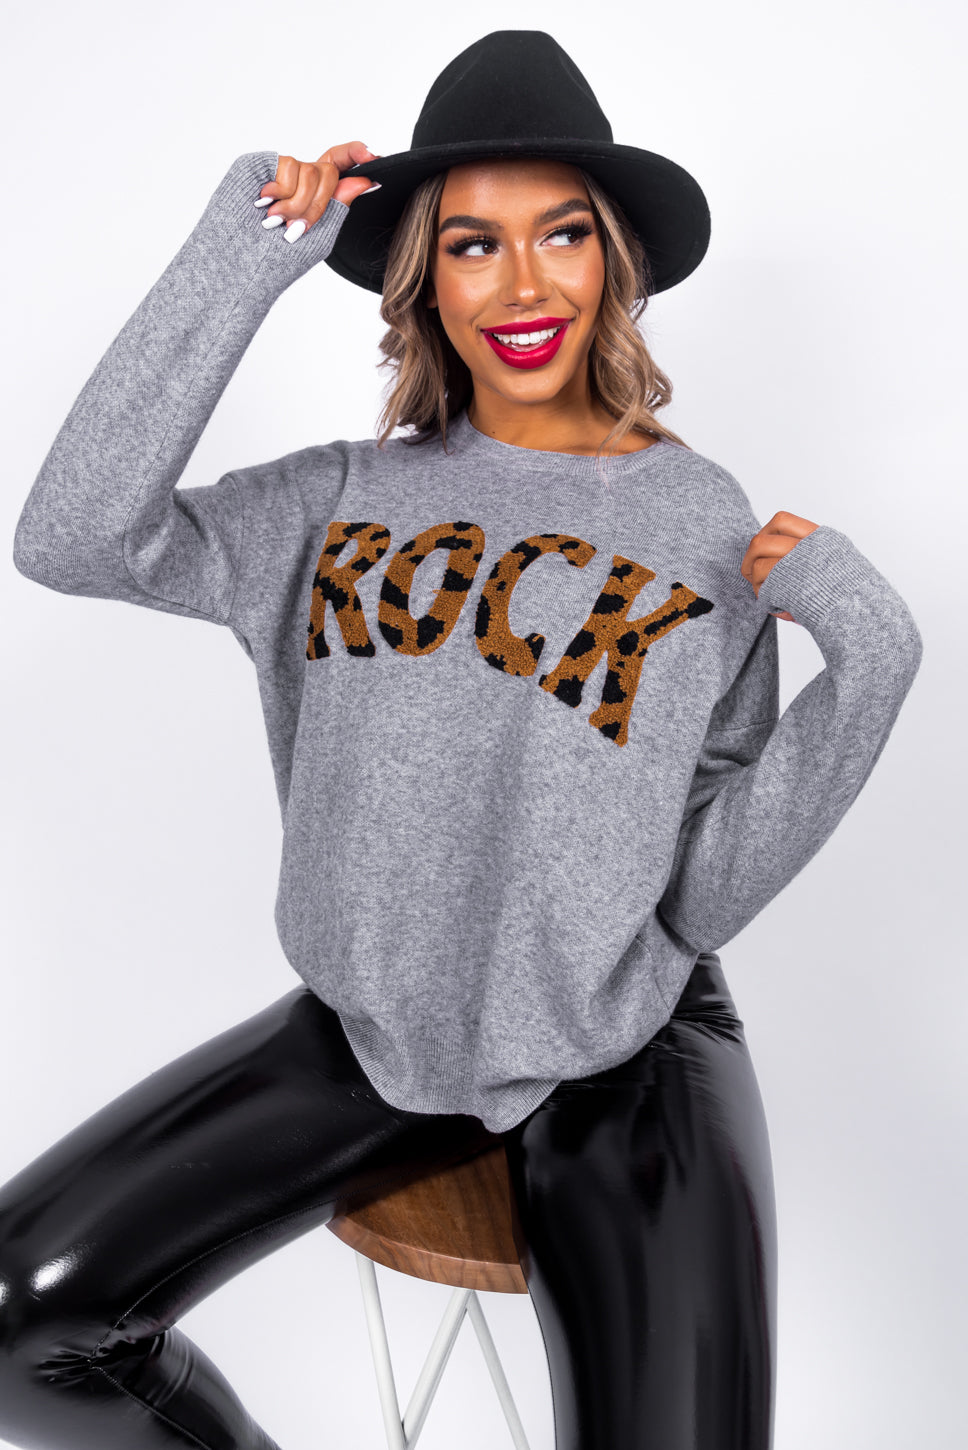 https://cdn.shopify.com/s/files/1/0062/6661/7925/files/product-video-planet_rock-jumper-in-grey.mp4?5988